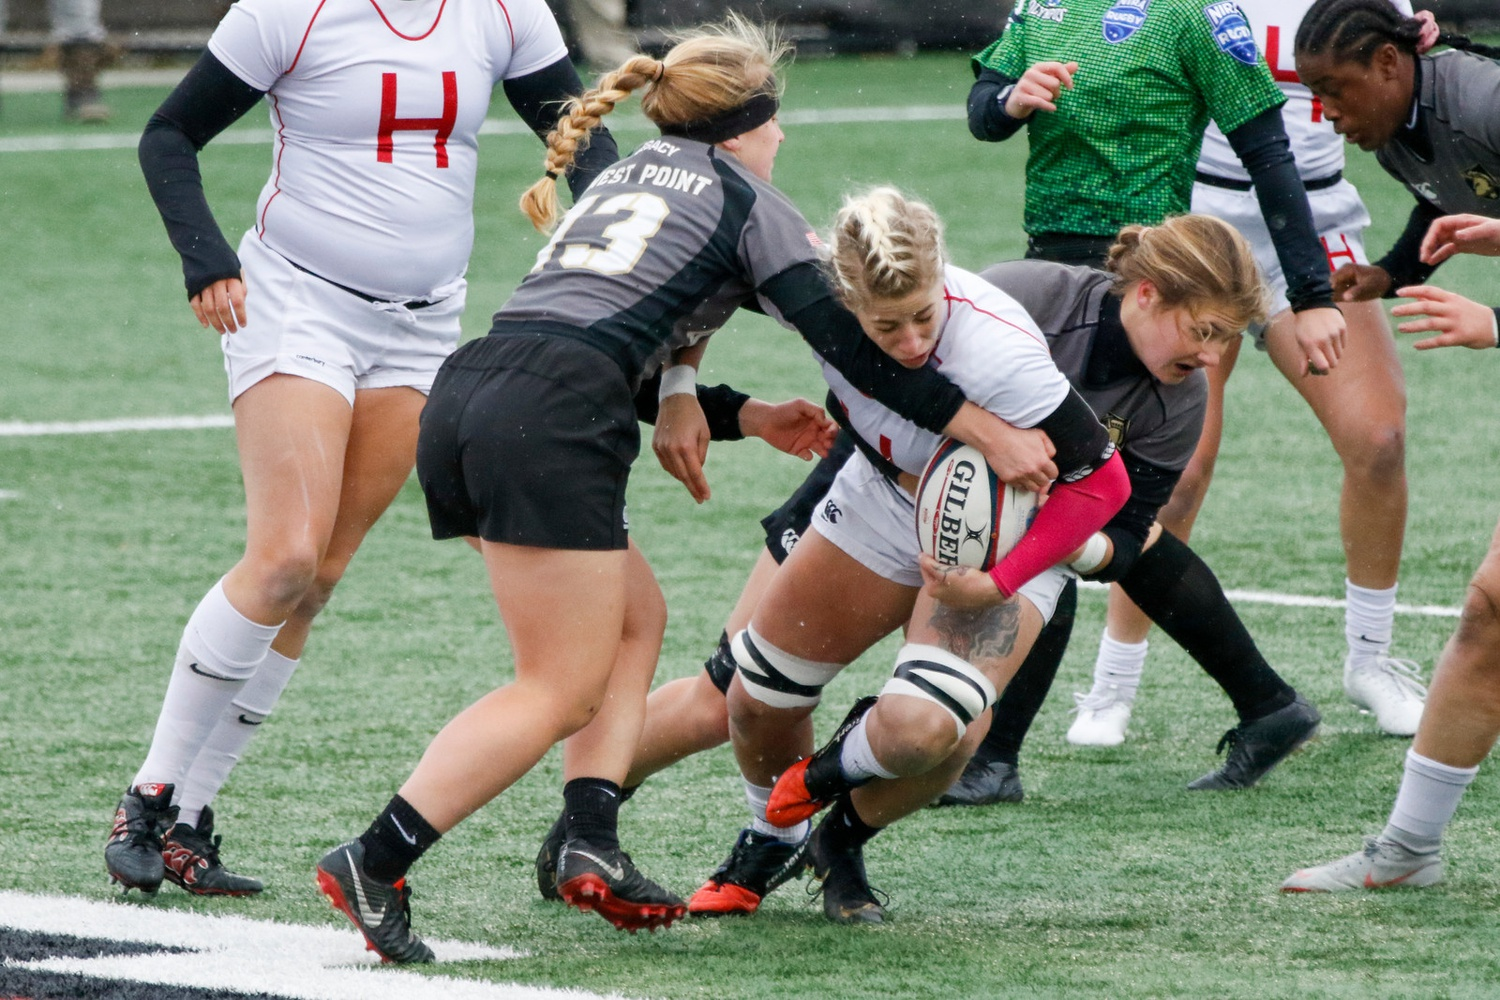 Erica Jarrell resists two opposing defenders in the Crimson's 2019 NIRA national championship victory over West Point.